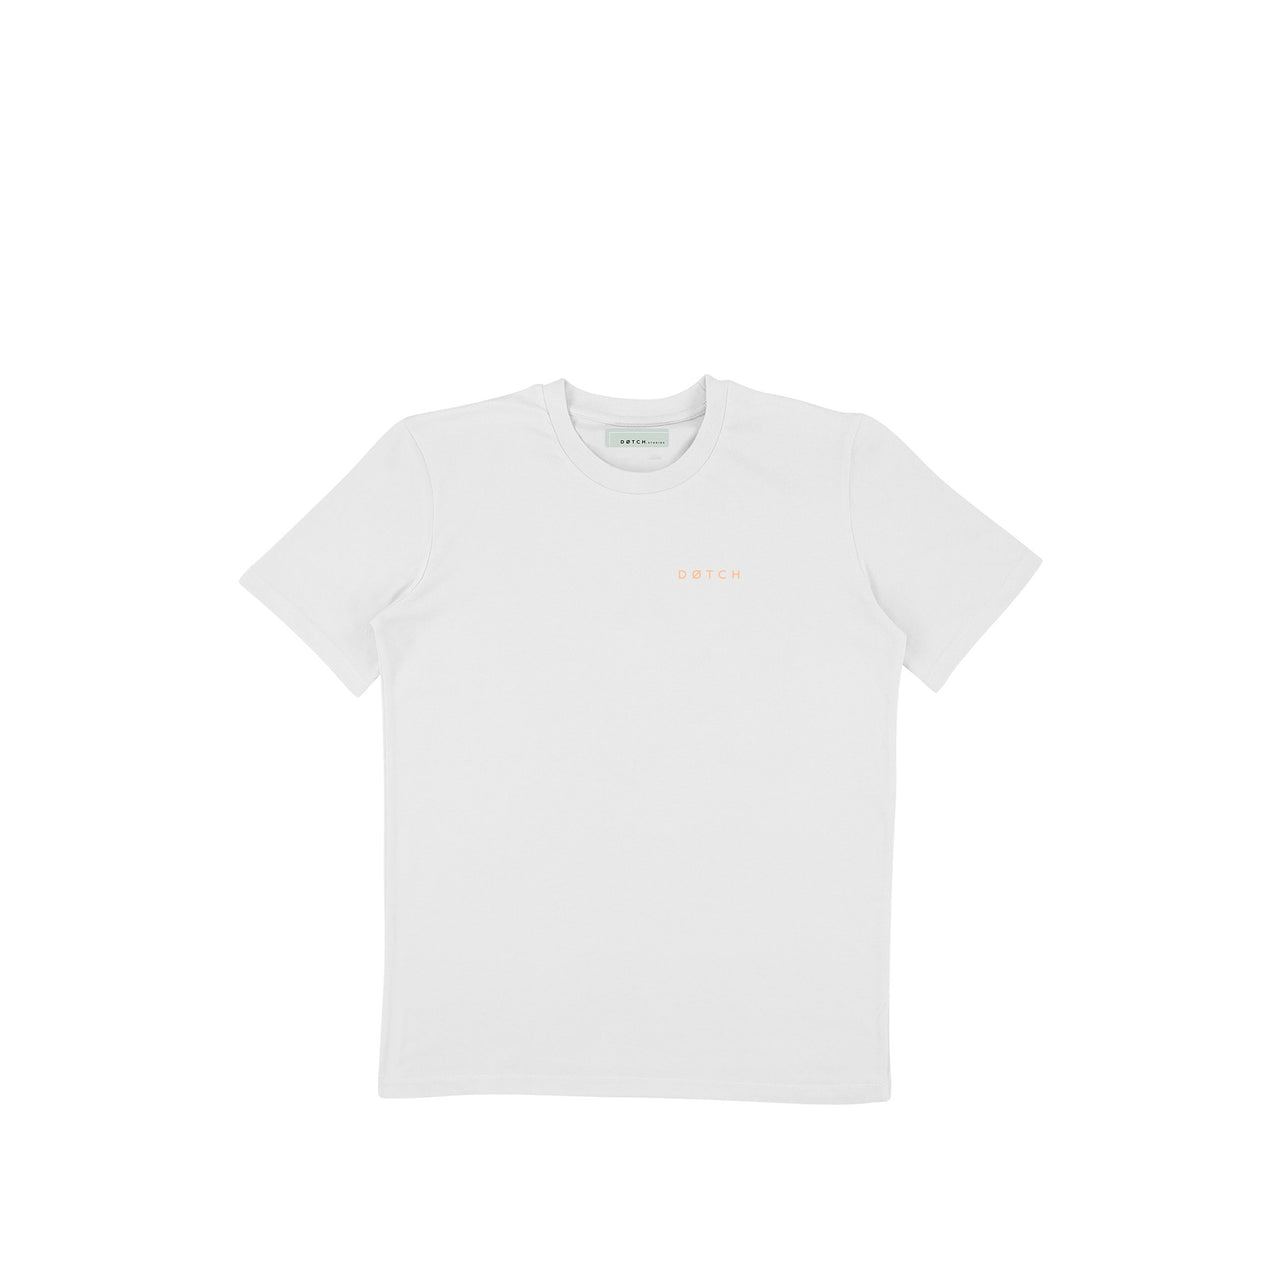 .Studio Shirt - White & Apricot